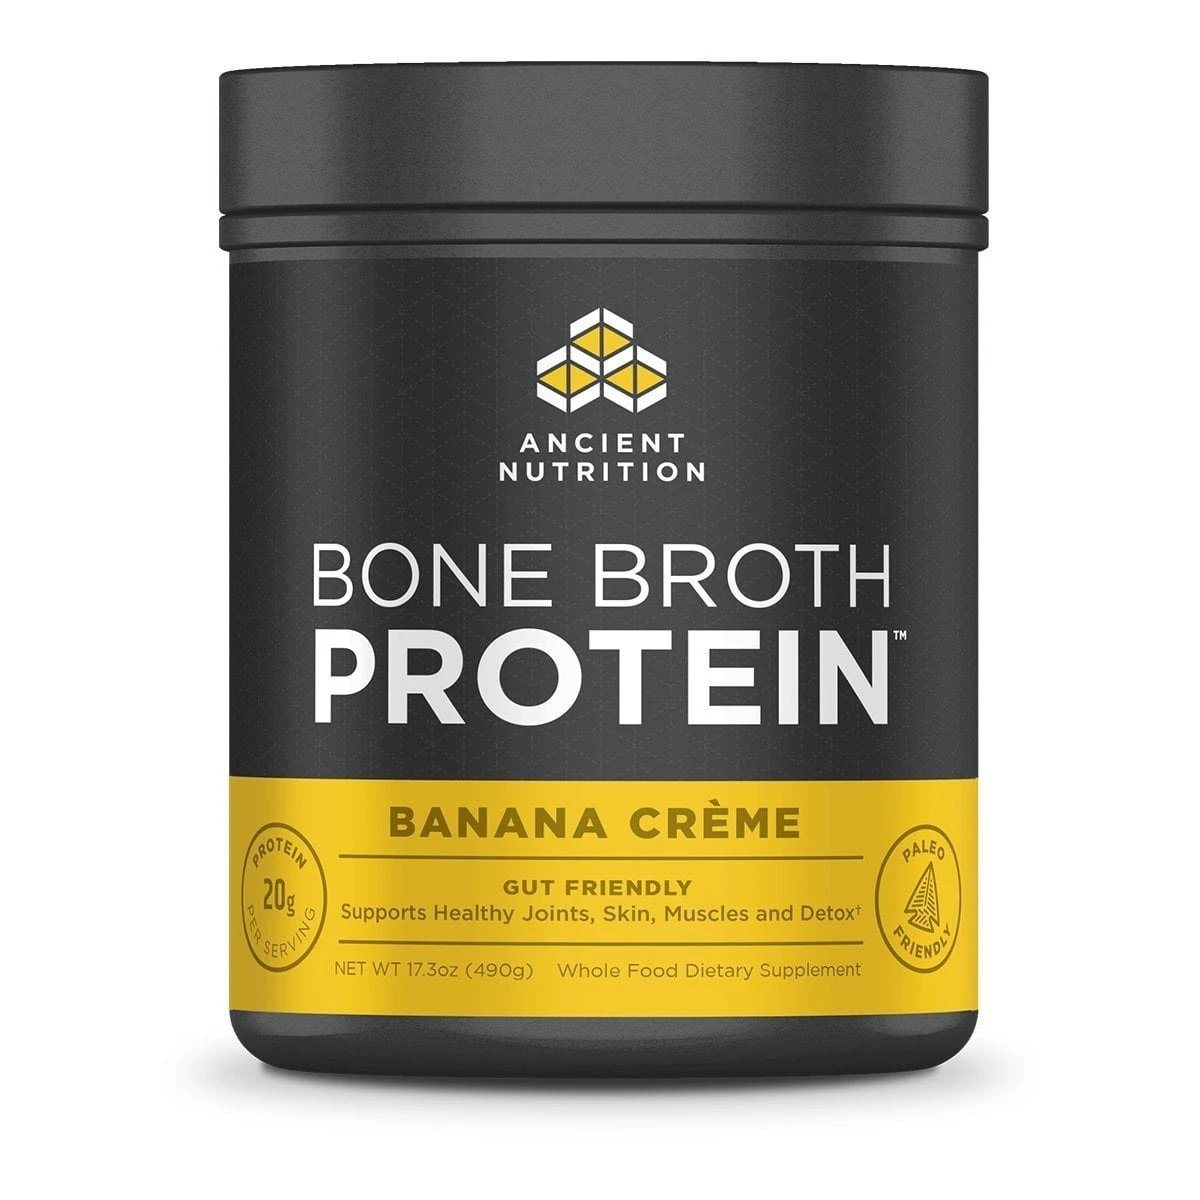 AN Bone Broth Protein 20 Servings Banana Creme Discontinued Ancient Nutrition  (4587810127937)